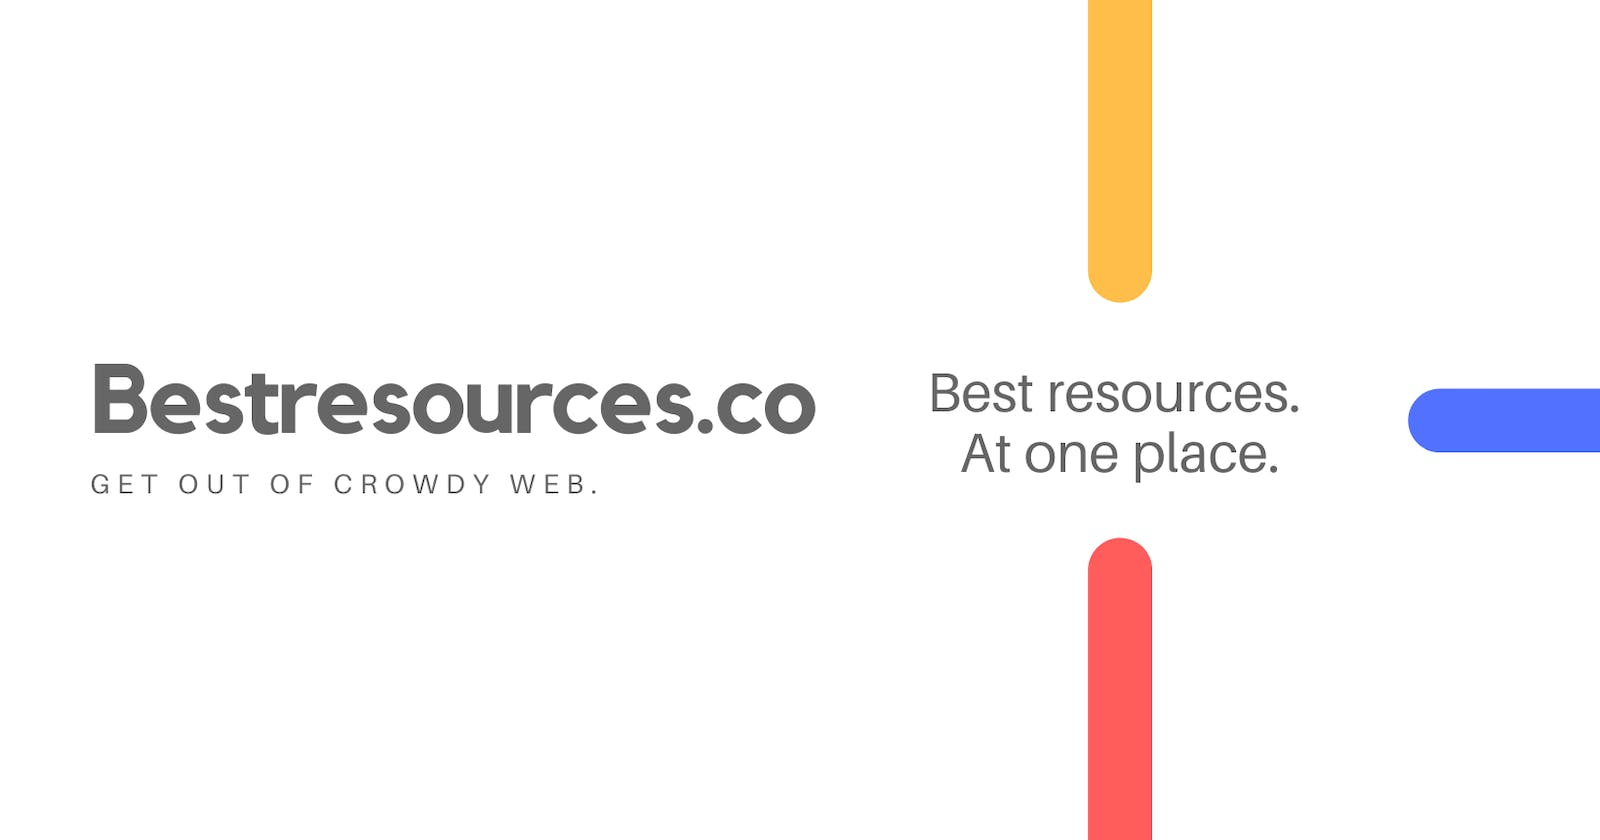 Introducing Bestresources.co : Share & explore personal resources at one place!